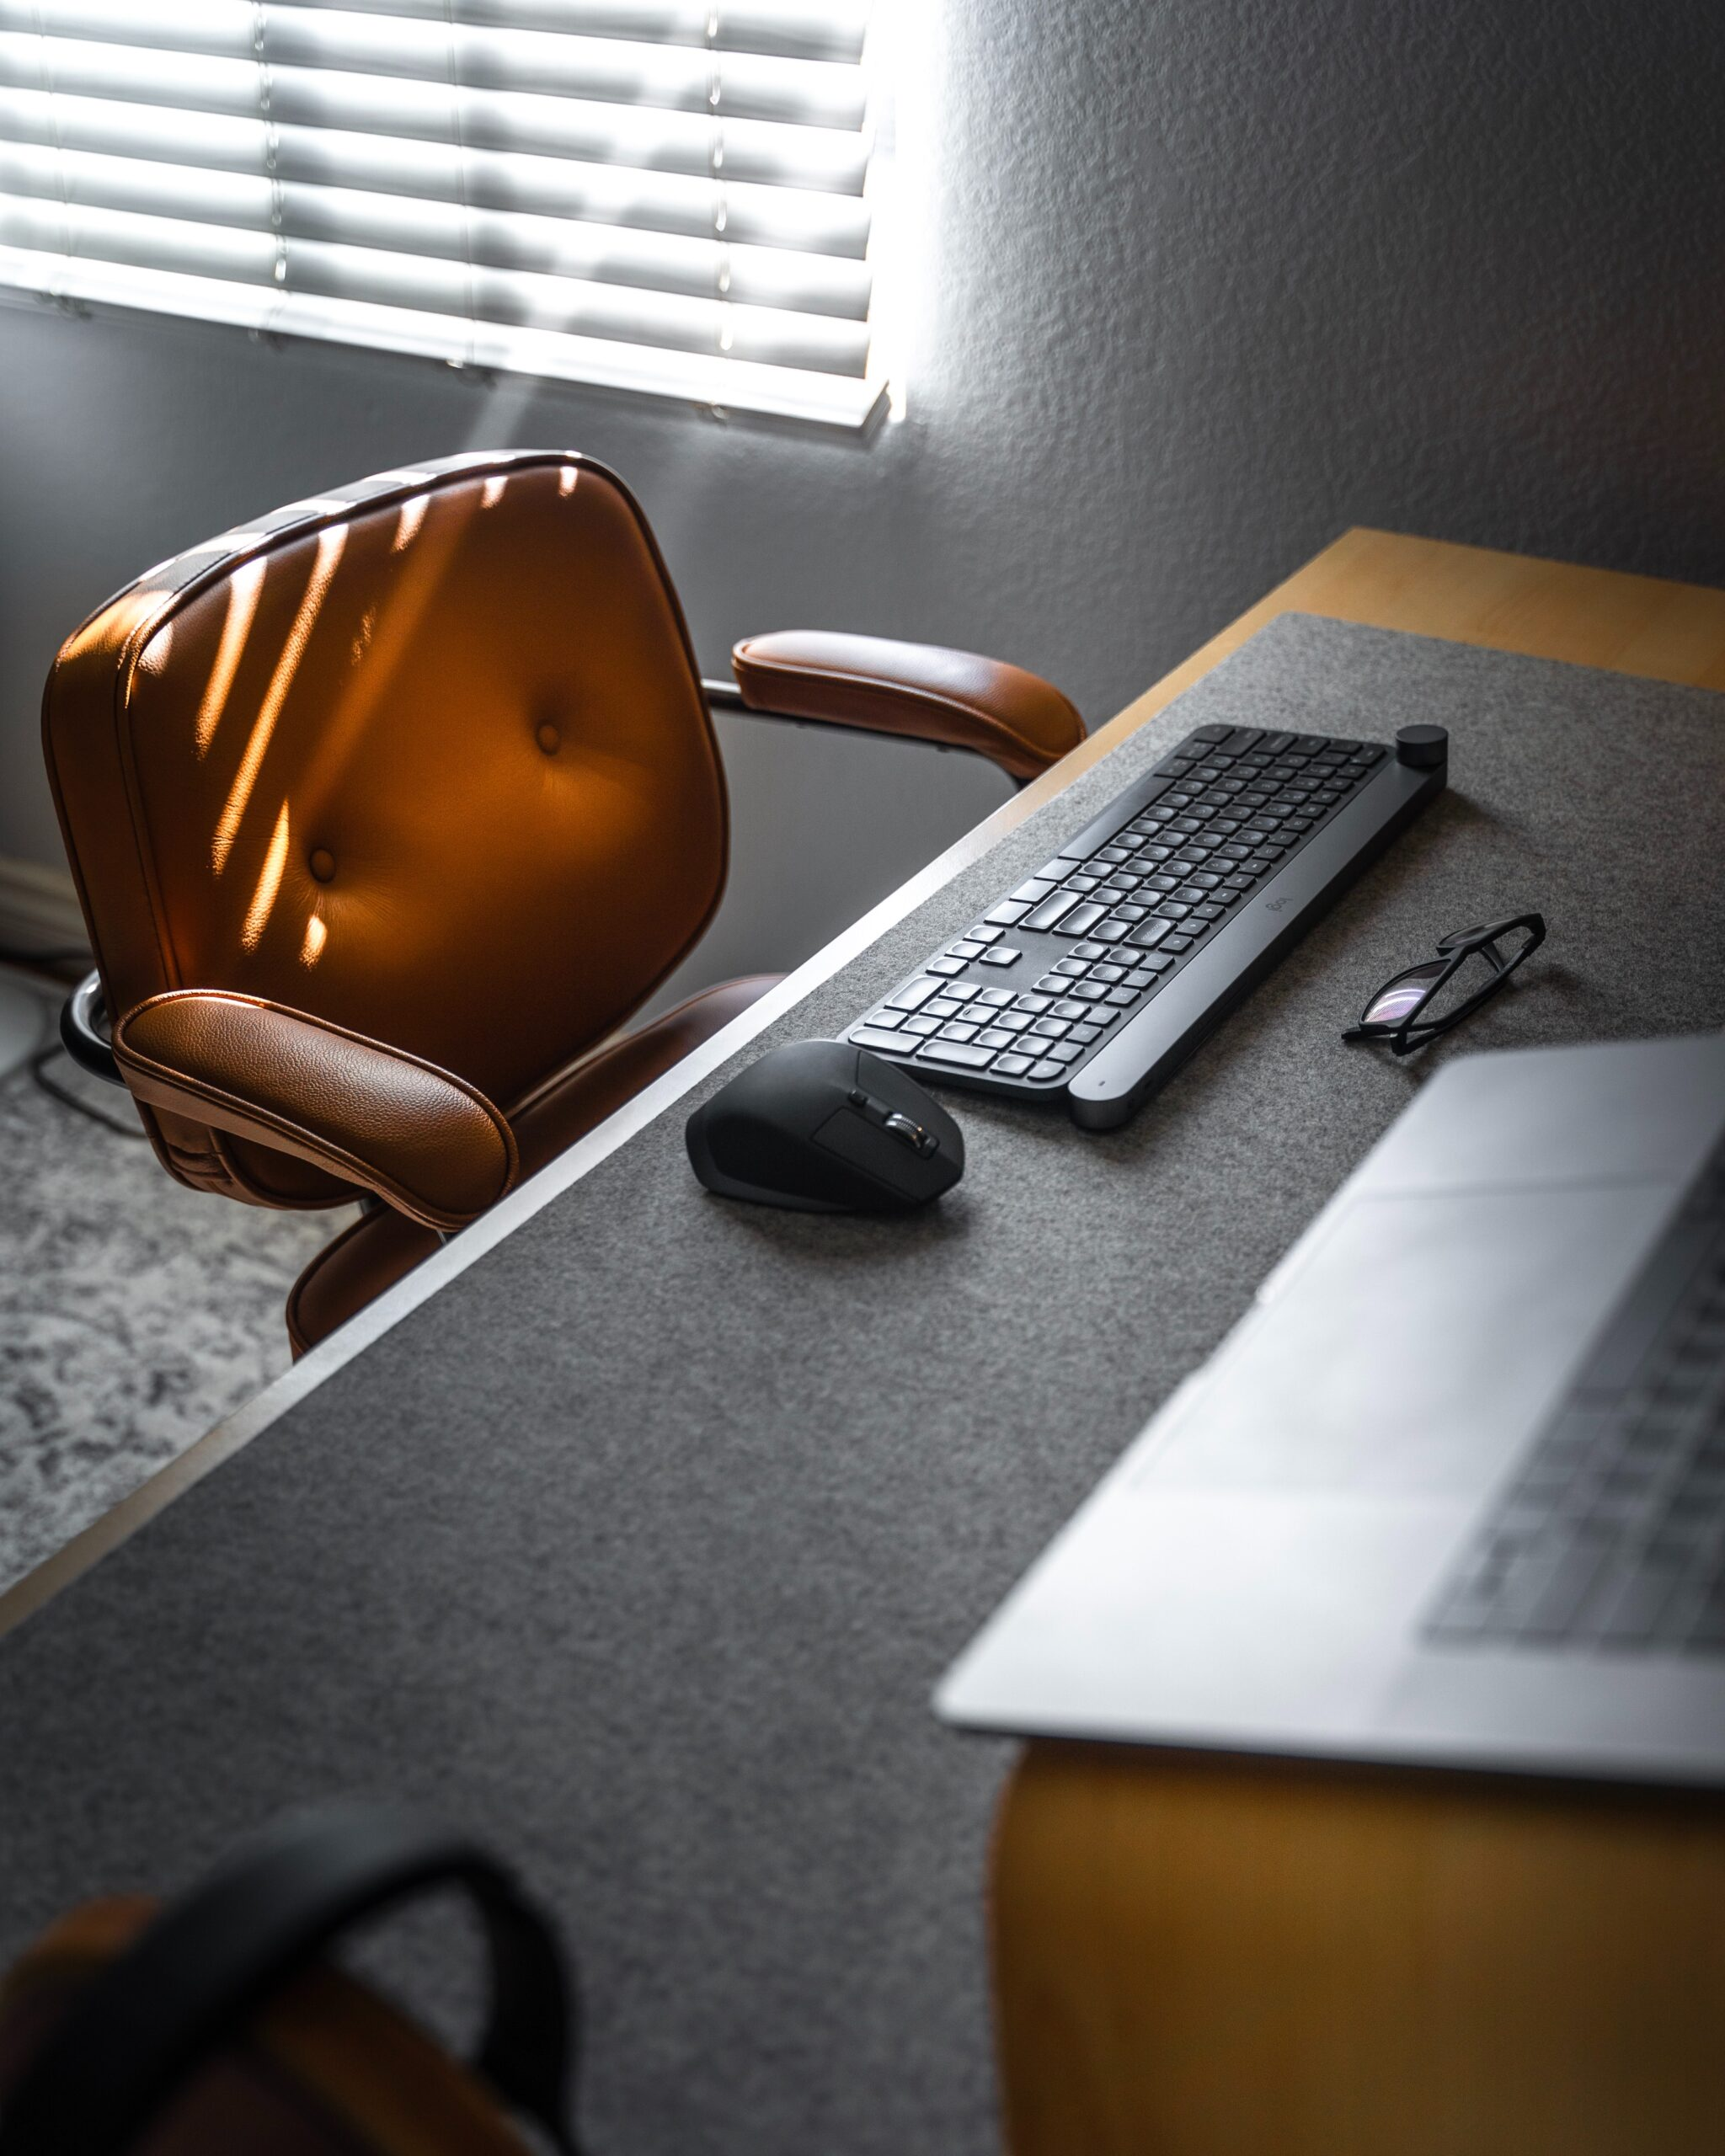 Photo of a lonely desk chair, keyboard, and computer by Michael Soledad on Unsplash